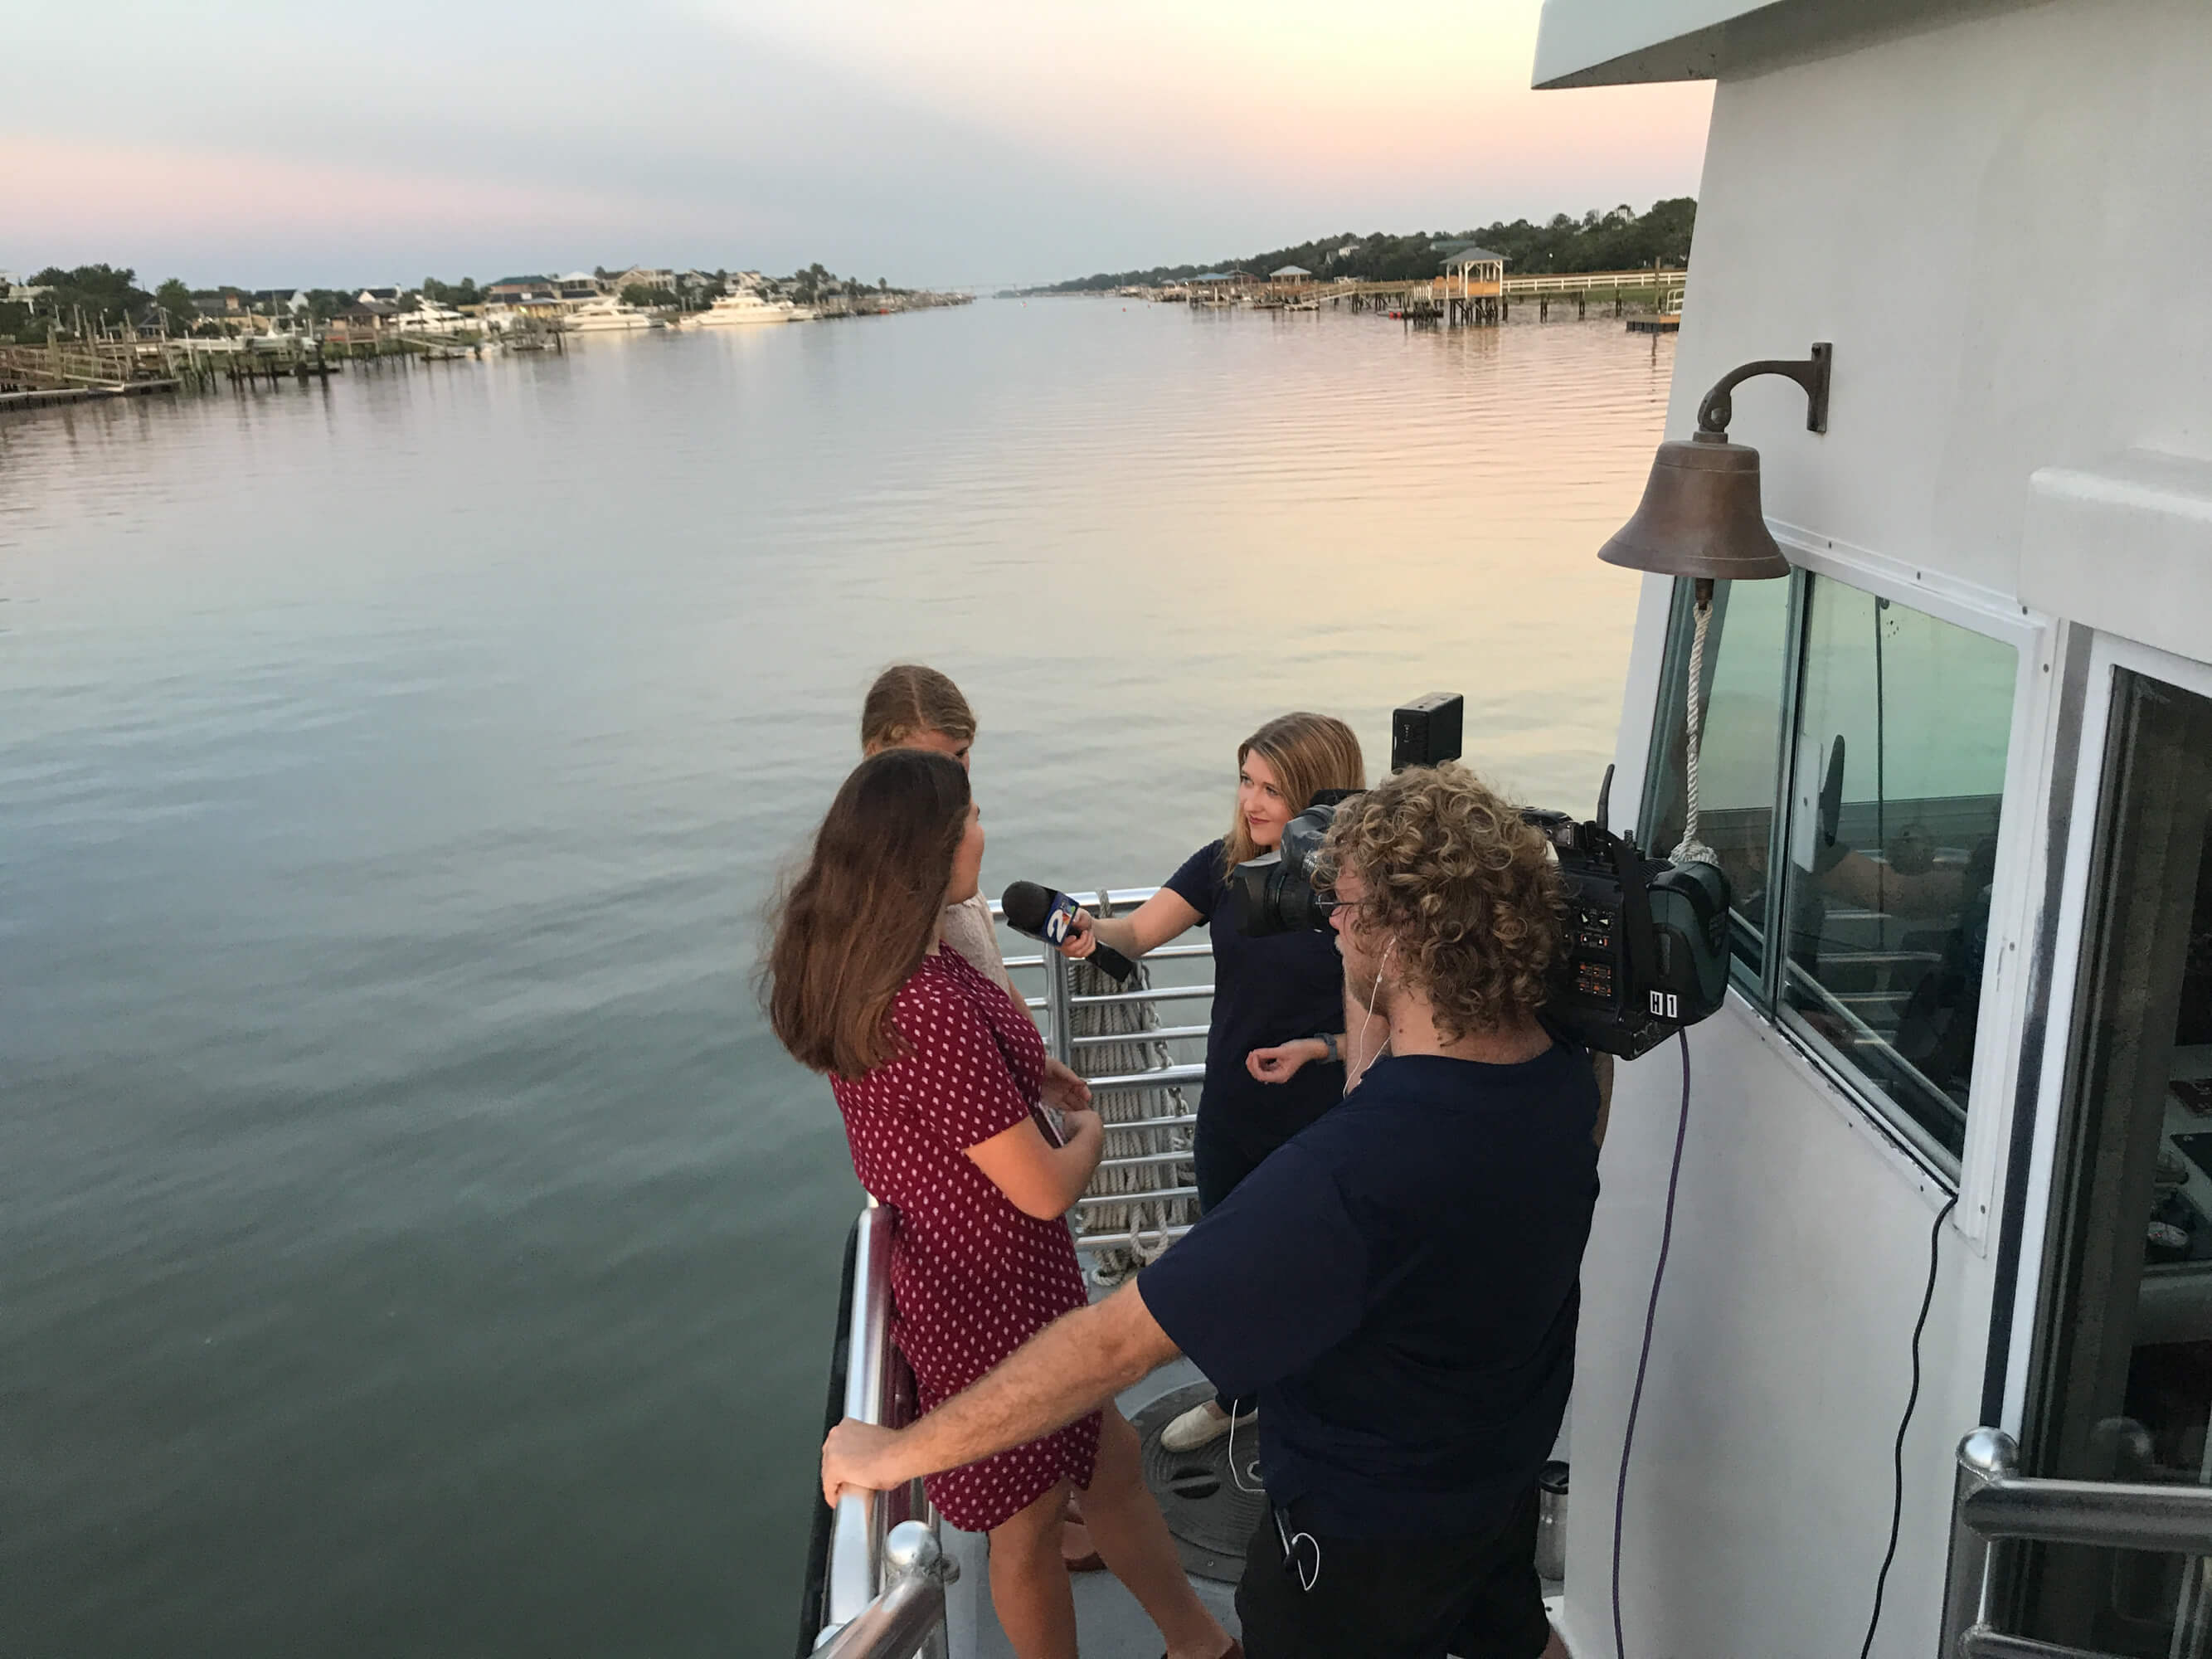 News 2 Covers Start of Dewees School Year: 8 kids on the ferry this year